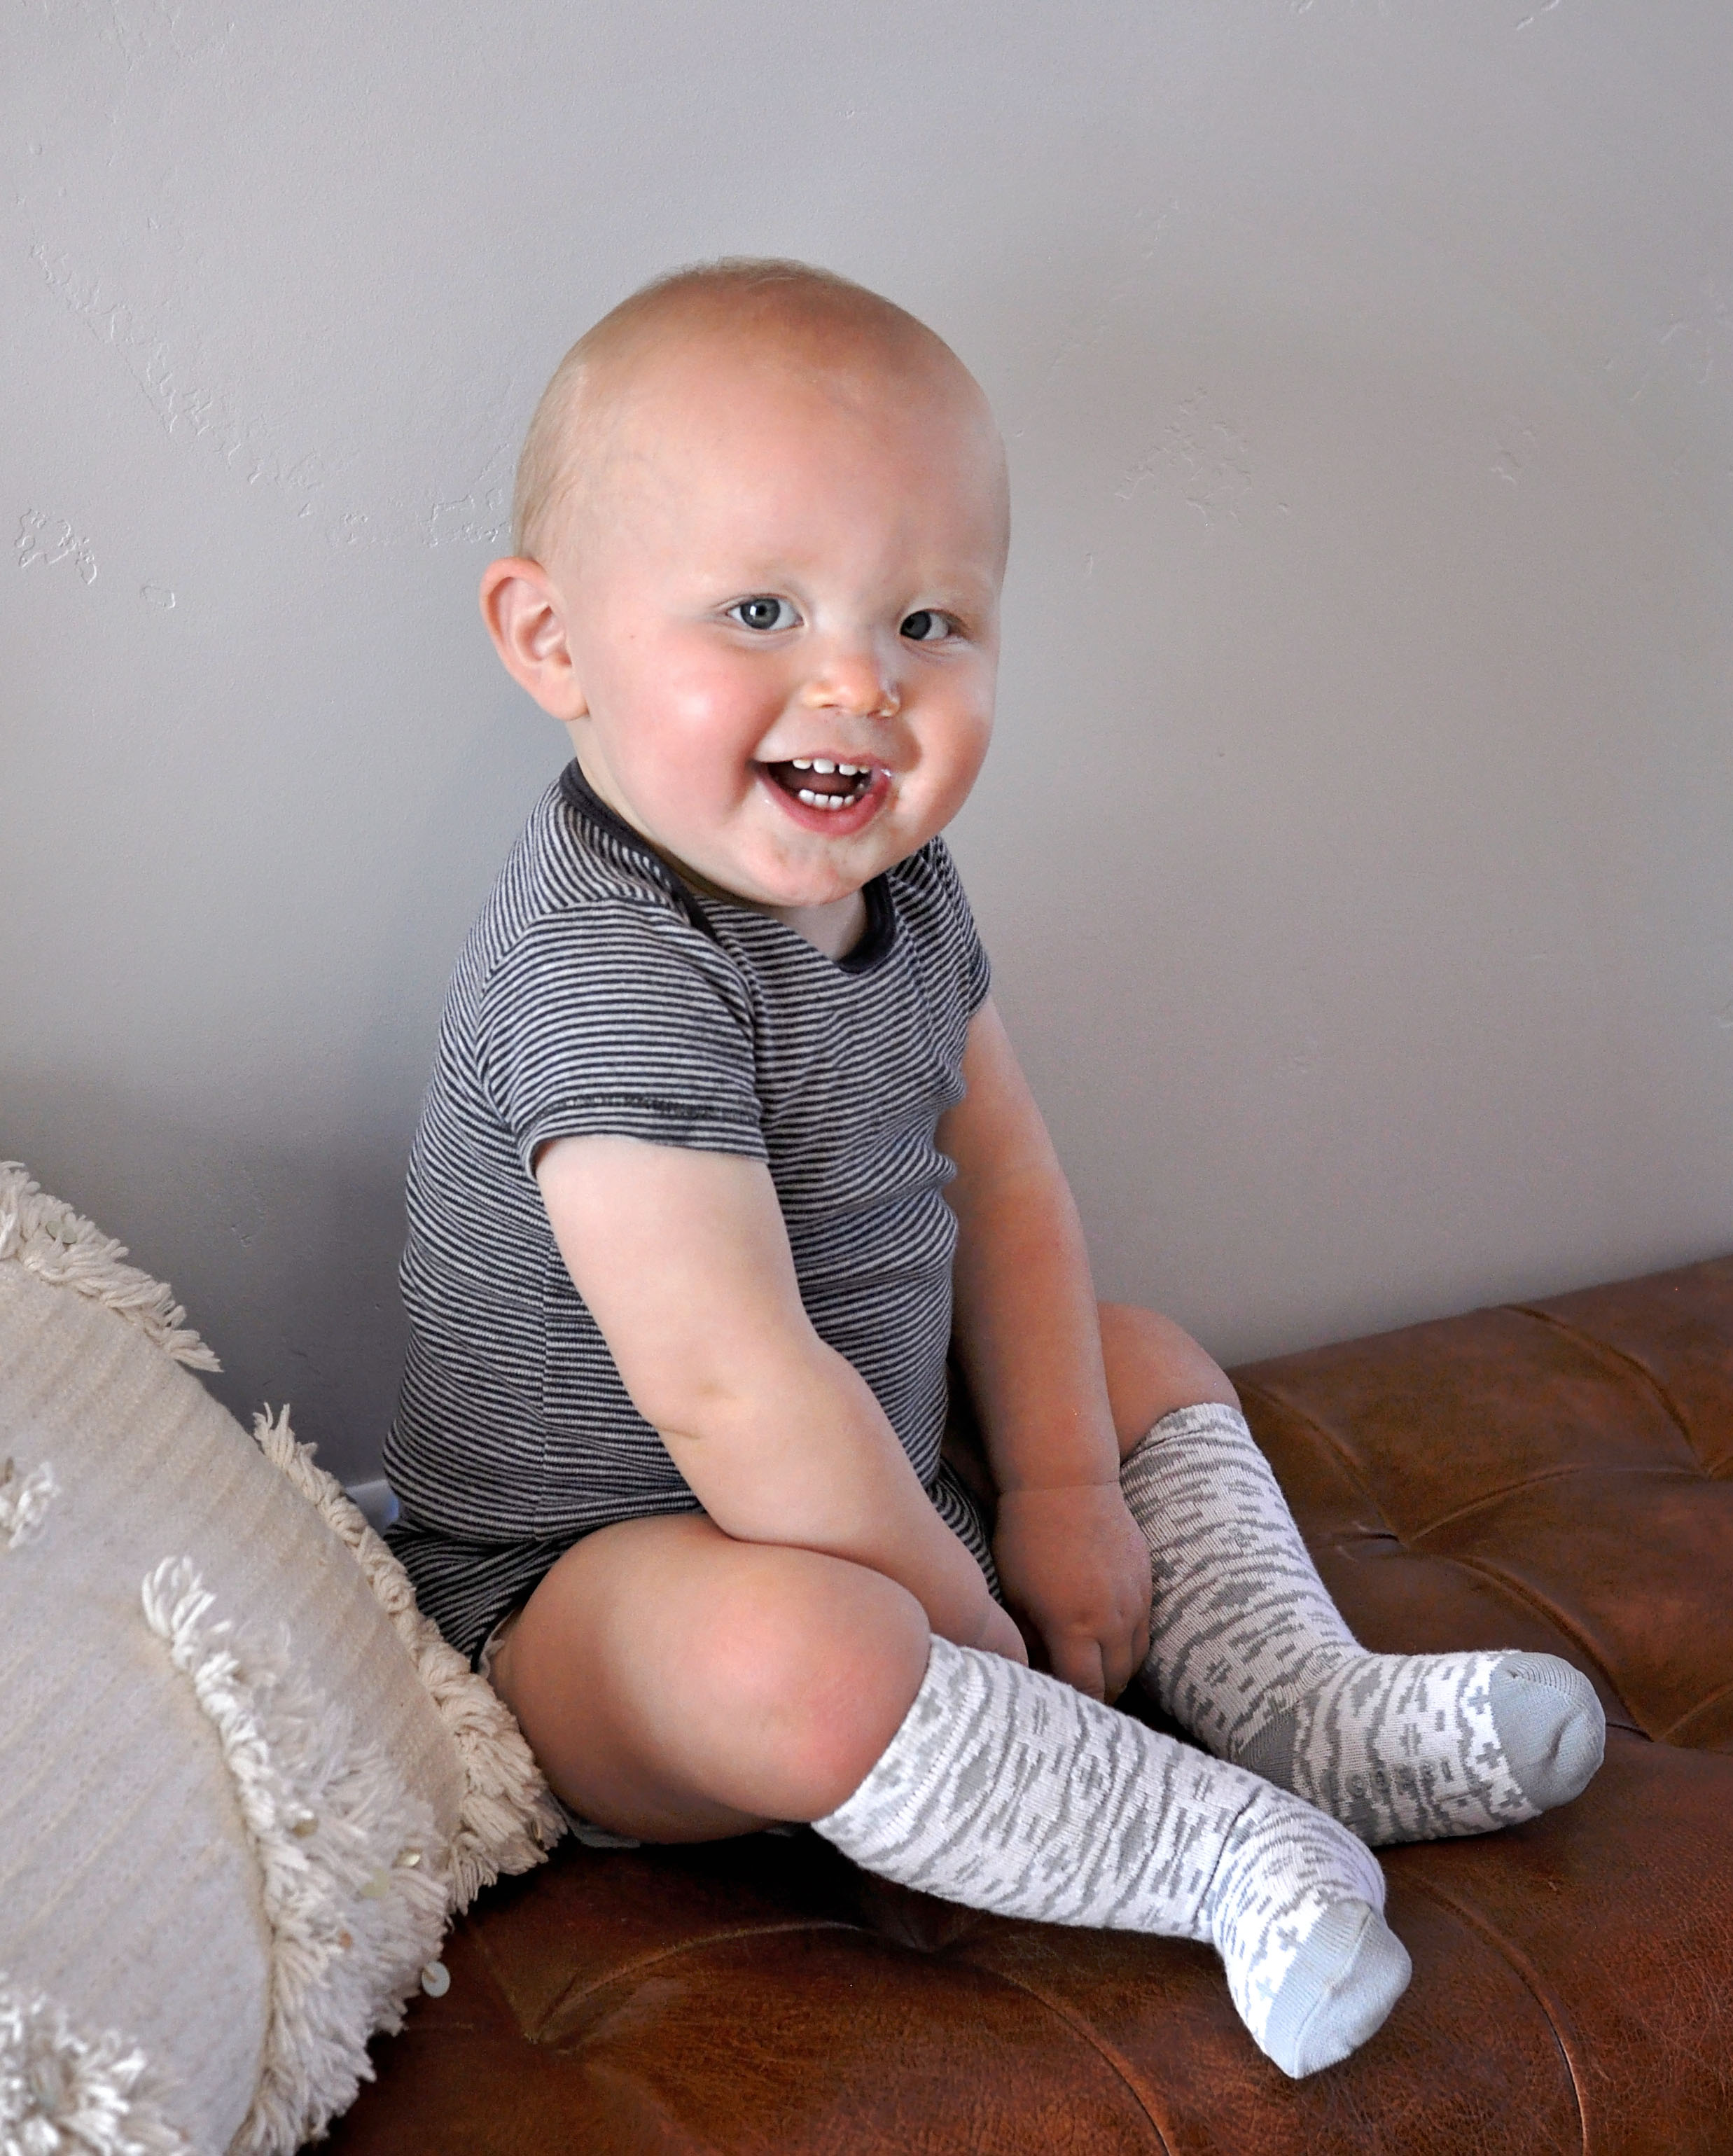 These are the best socks for babies because the length keeps them extra warm, and prevents them from being able to take them off!